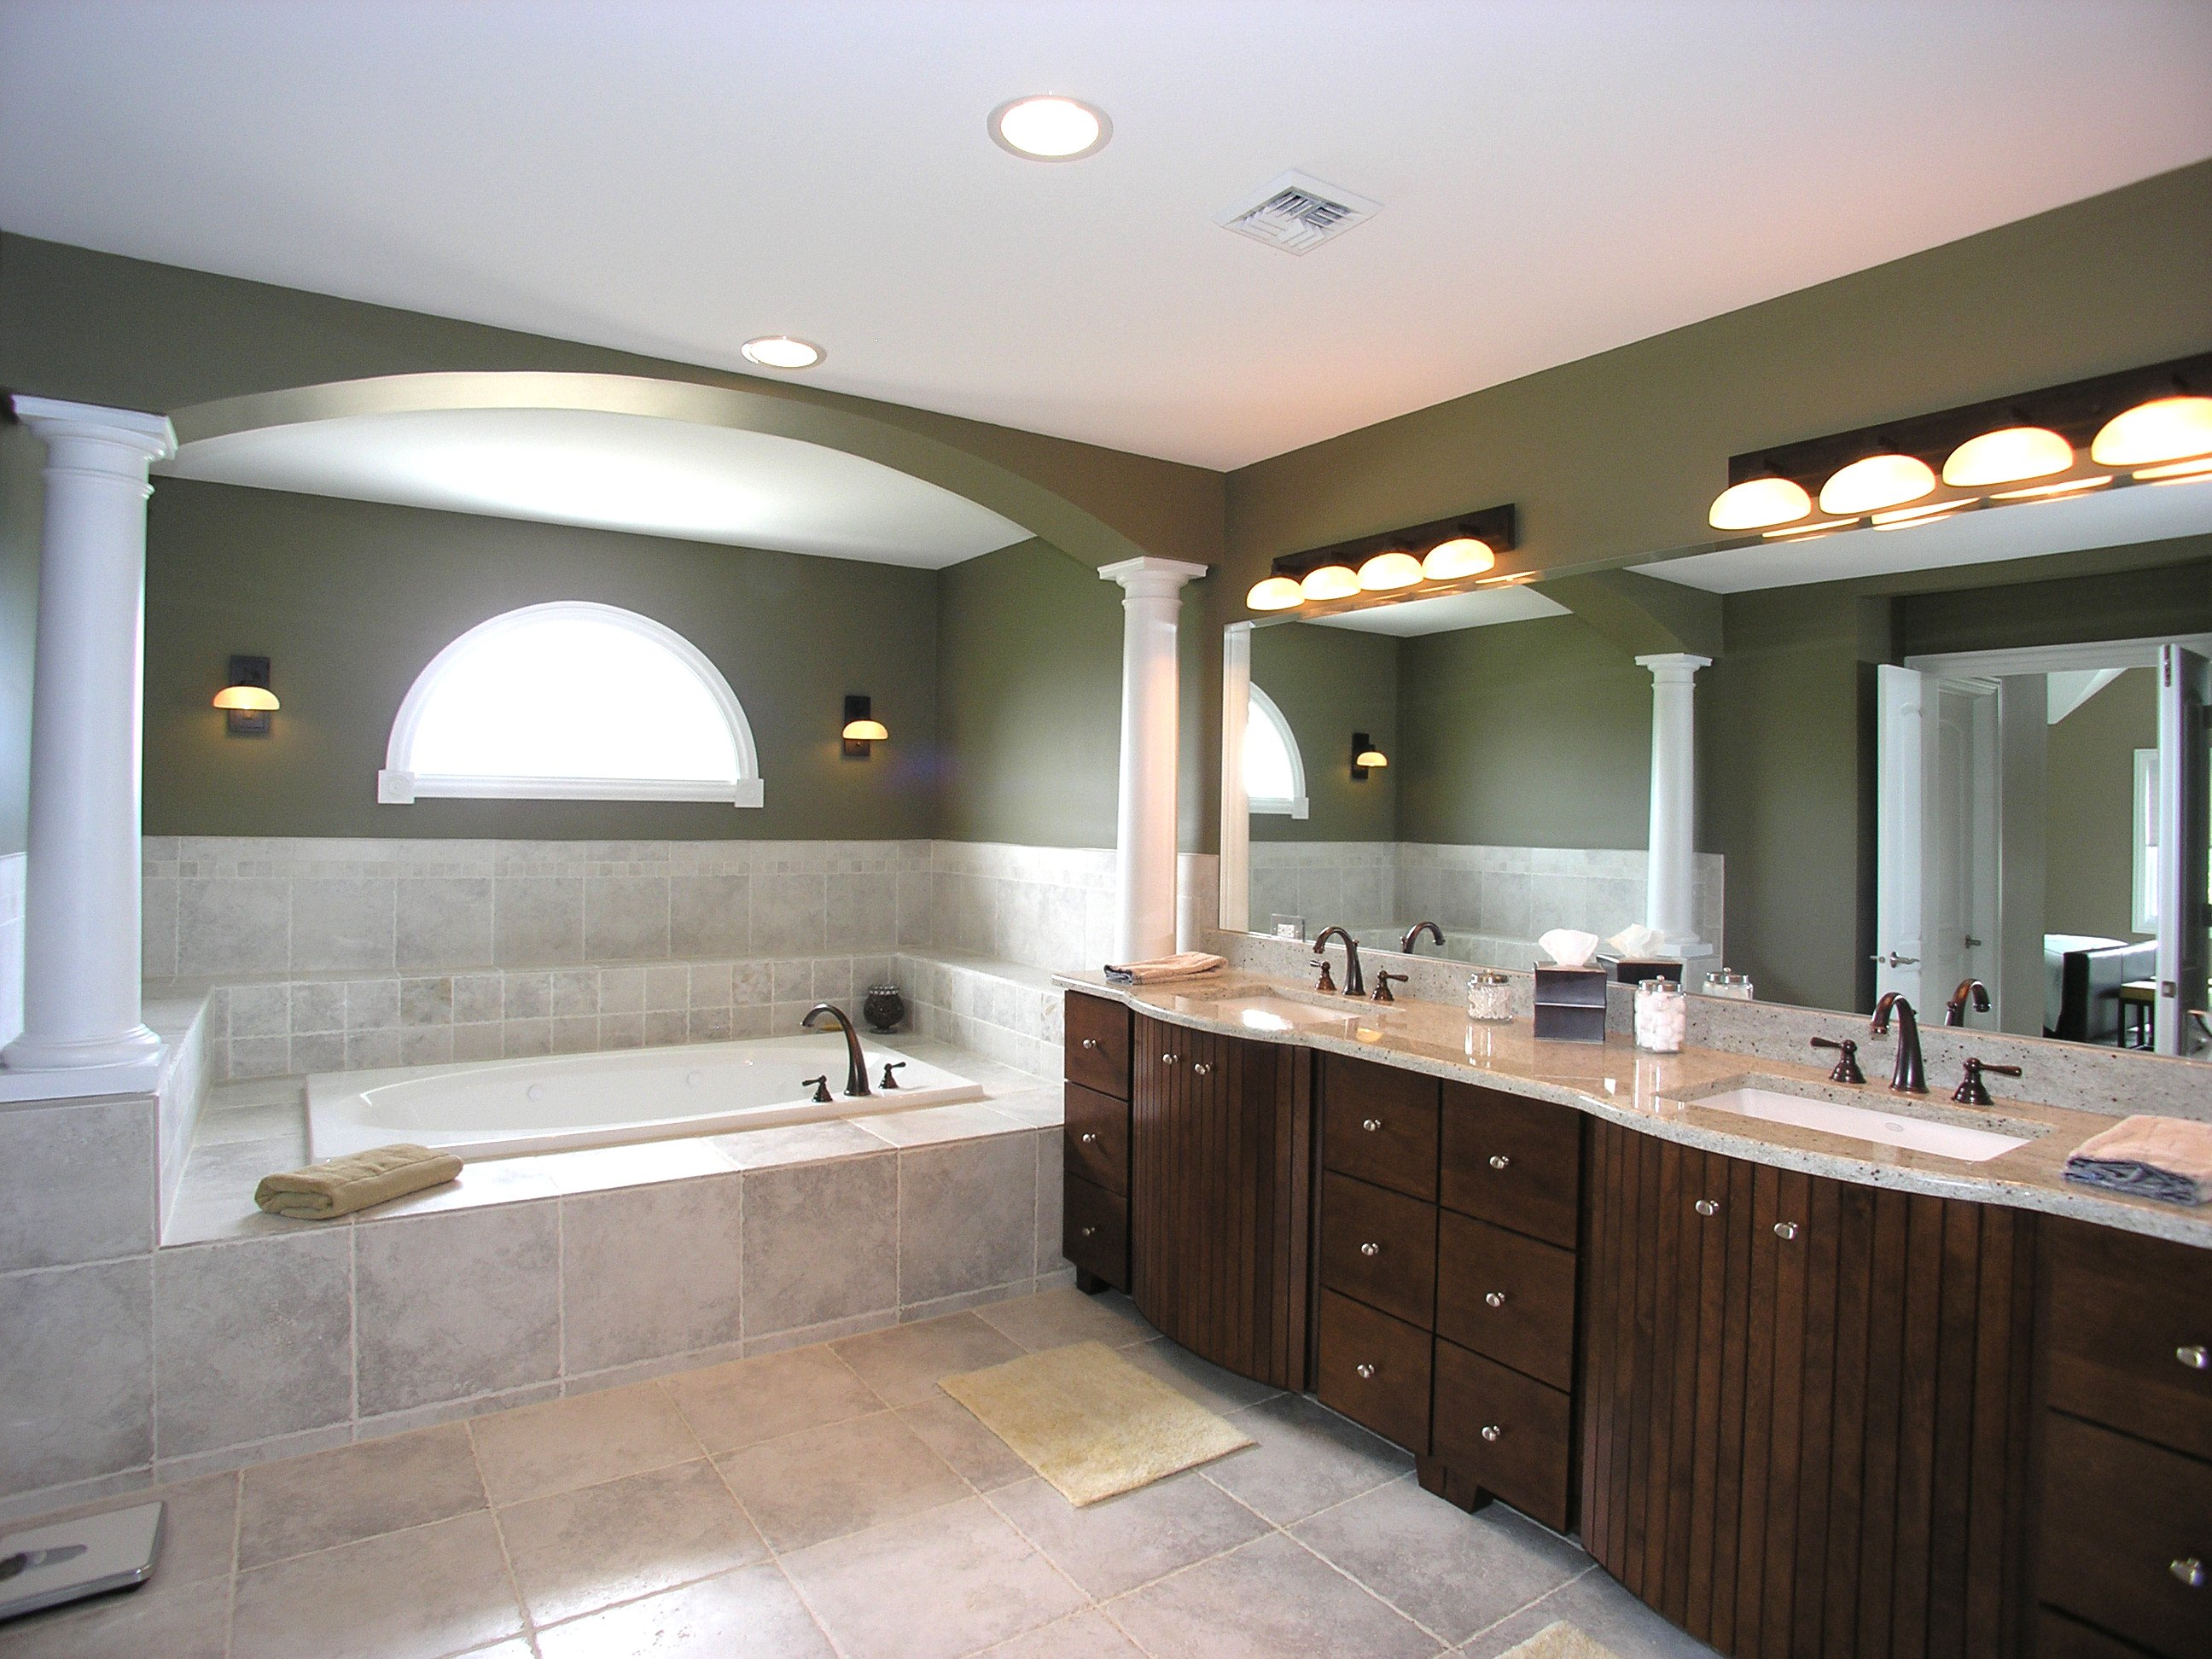 Bathroom lighting ideas for your home - Best lighting options for your bathroom ...